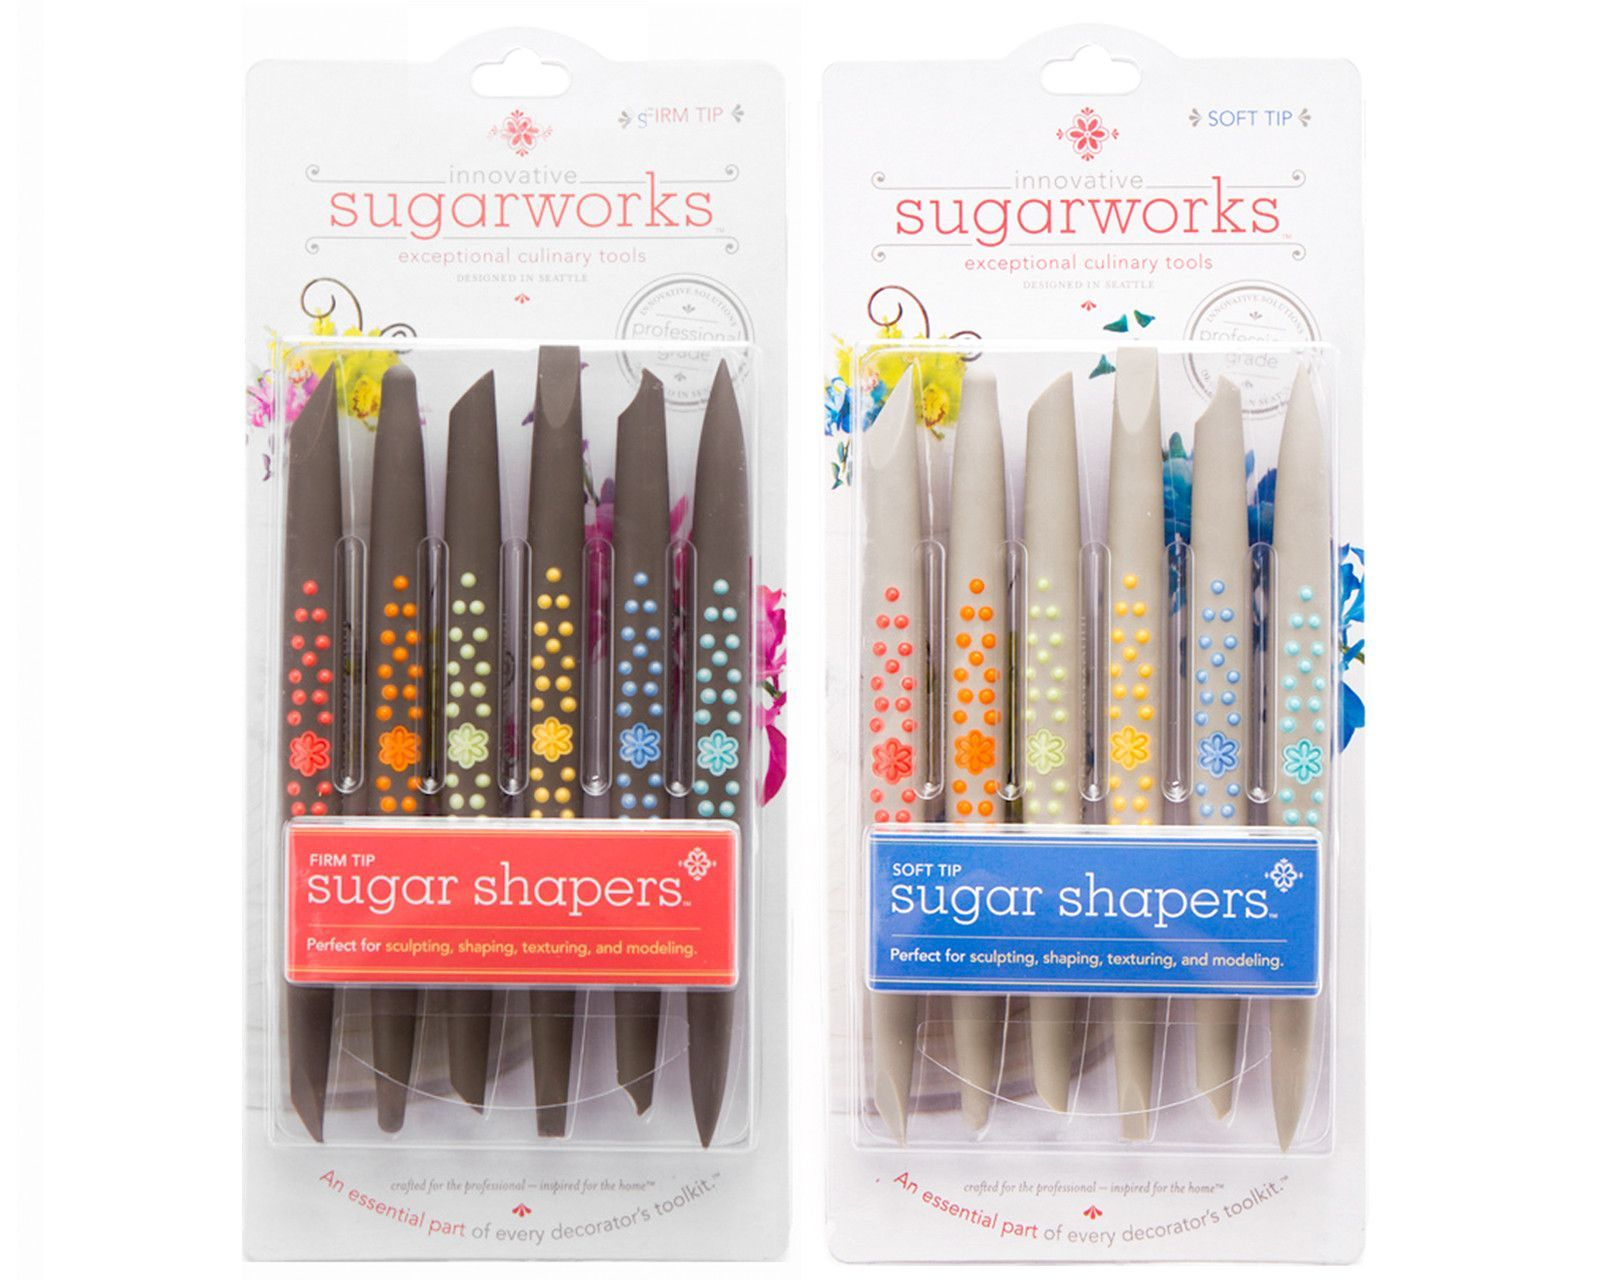 Packaged Sugar Shapers | Cake decorating company, Baking ...